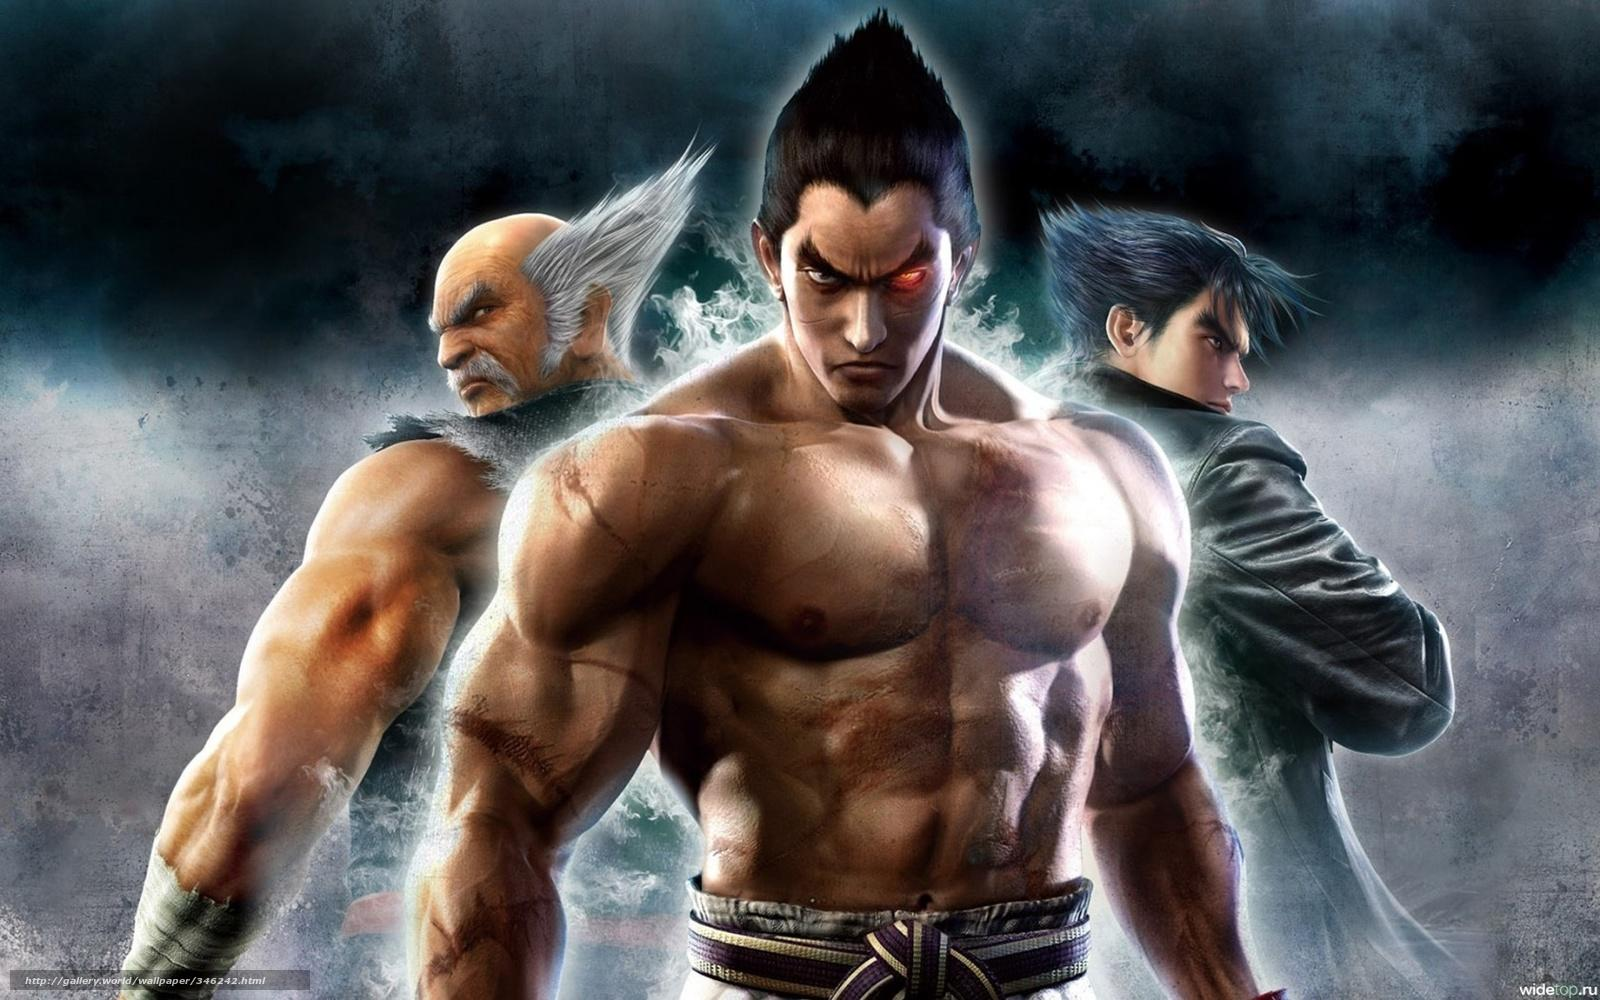 Download wallpaper Tekken, Jin Kazama, Kazuya Mishima, fighters free ...